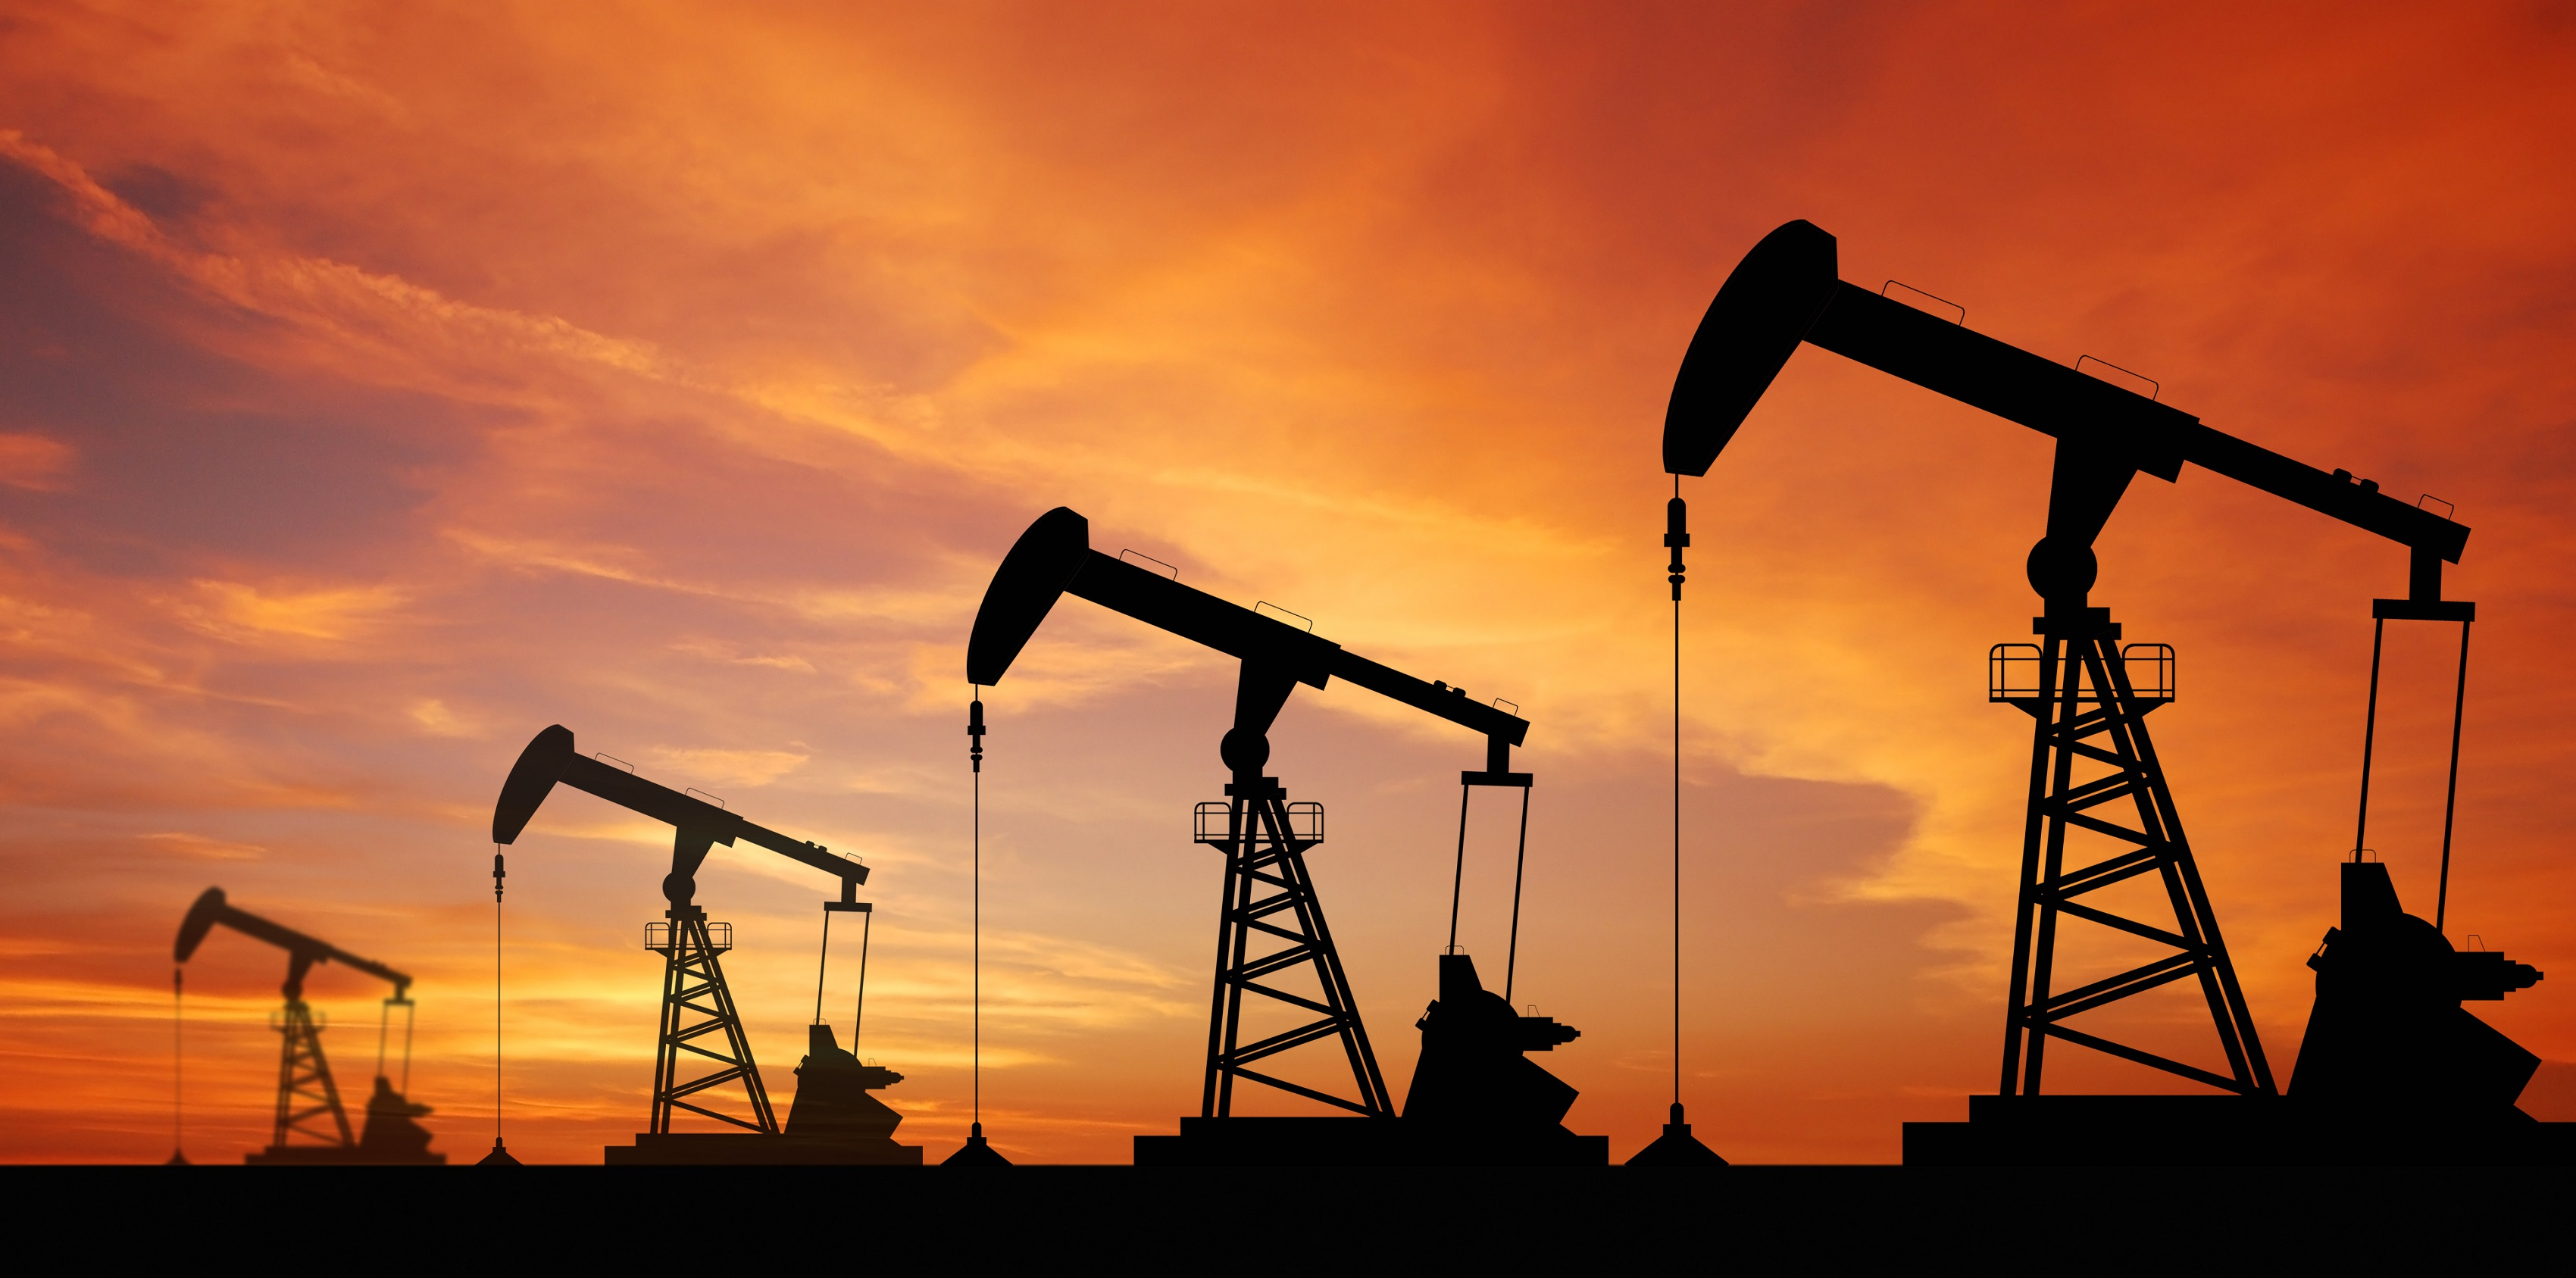 Over 100 hectares set aside for oil and gas investments